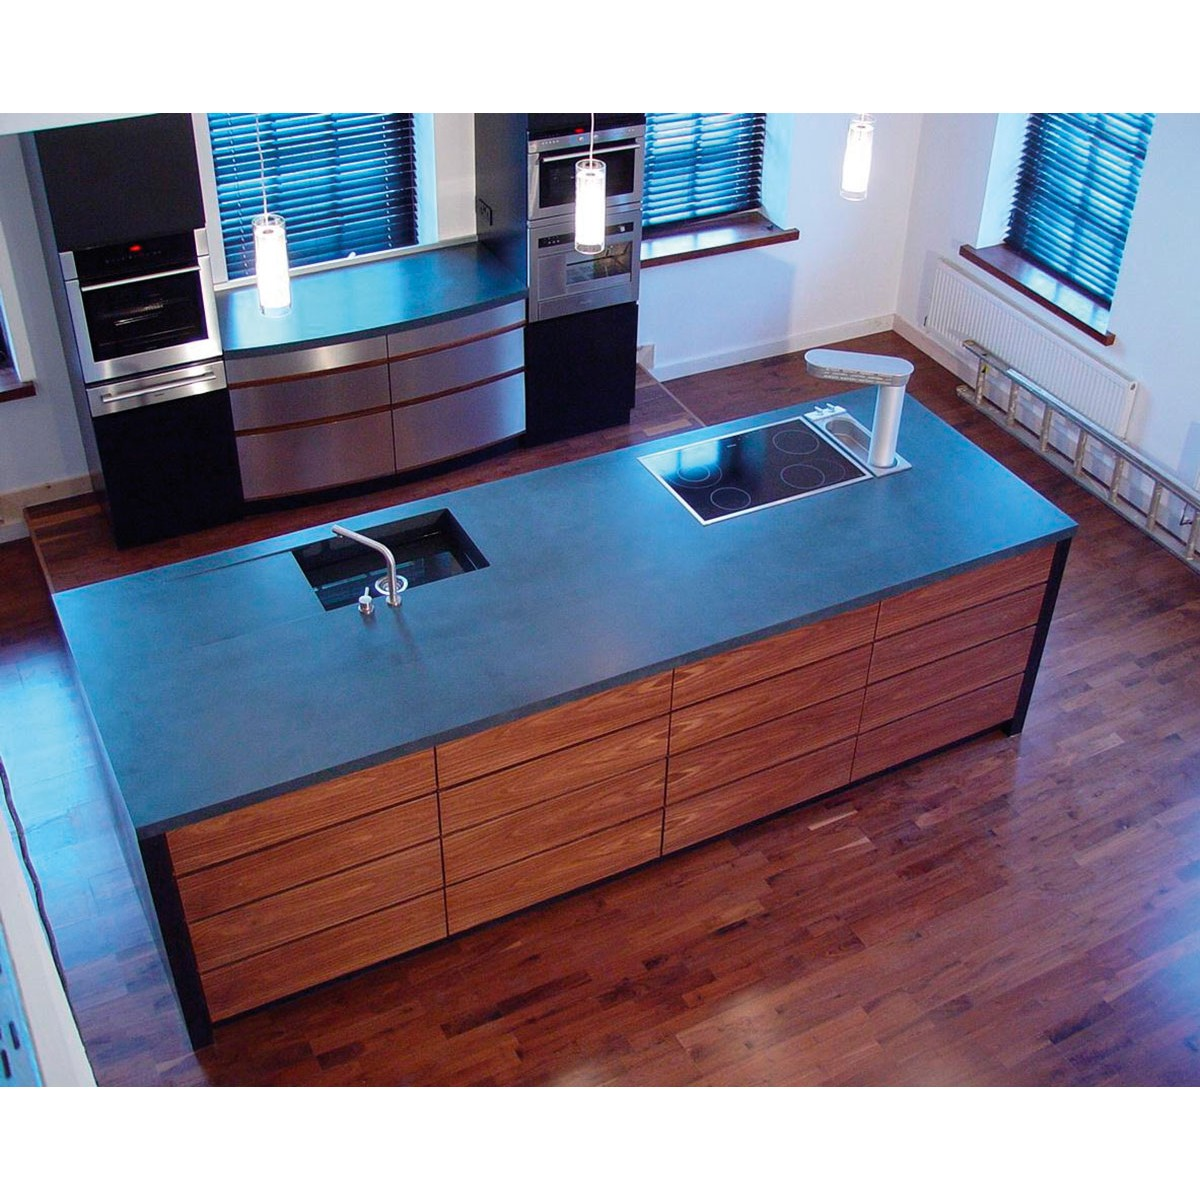 Durat 730 Recycled Polyester Countertop